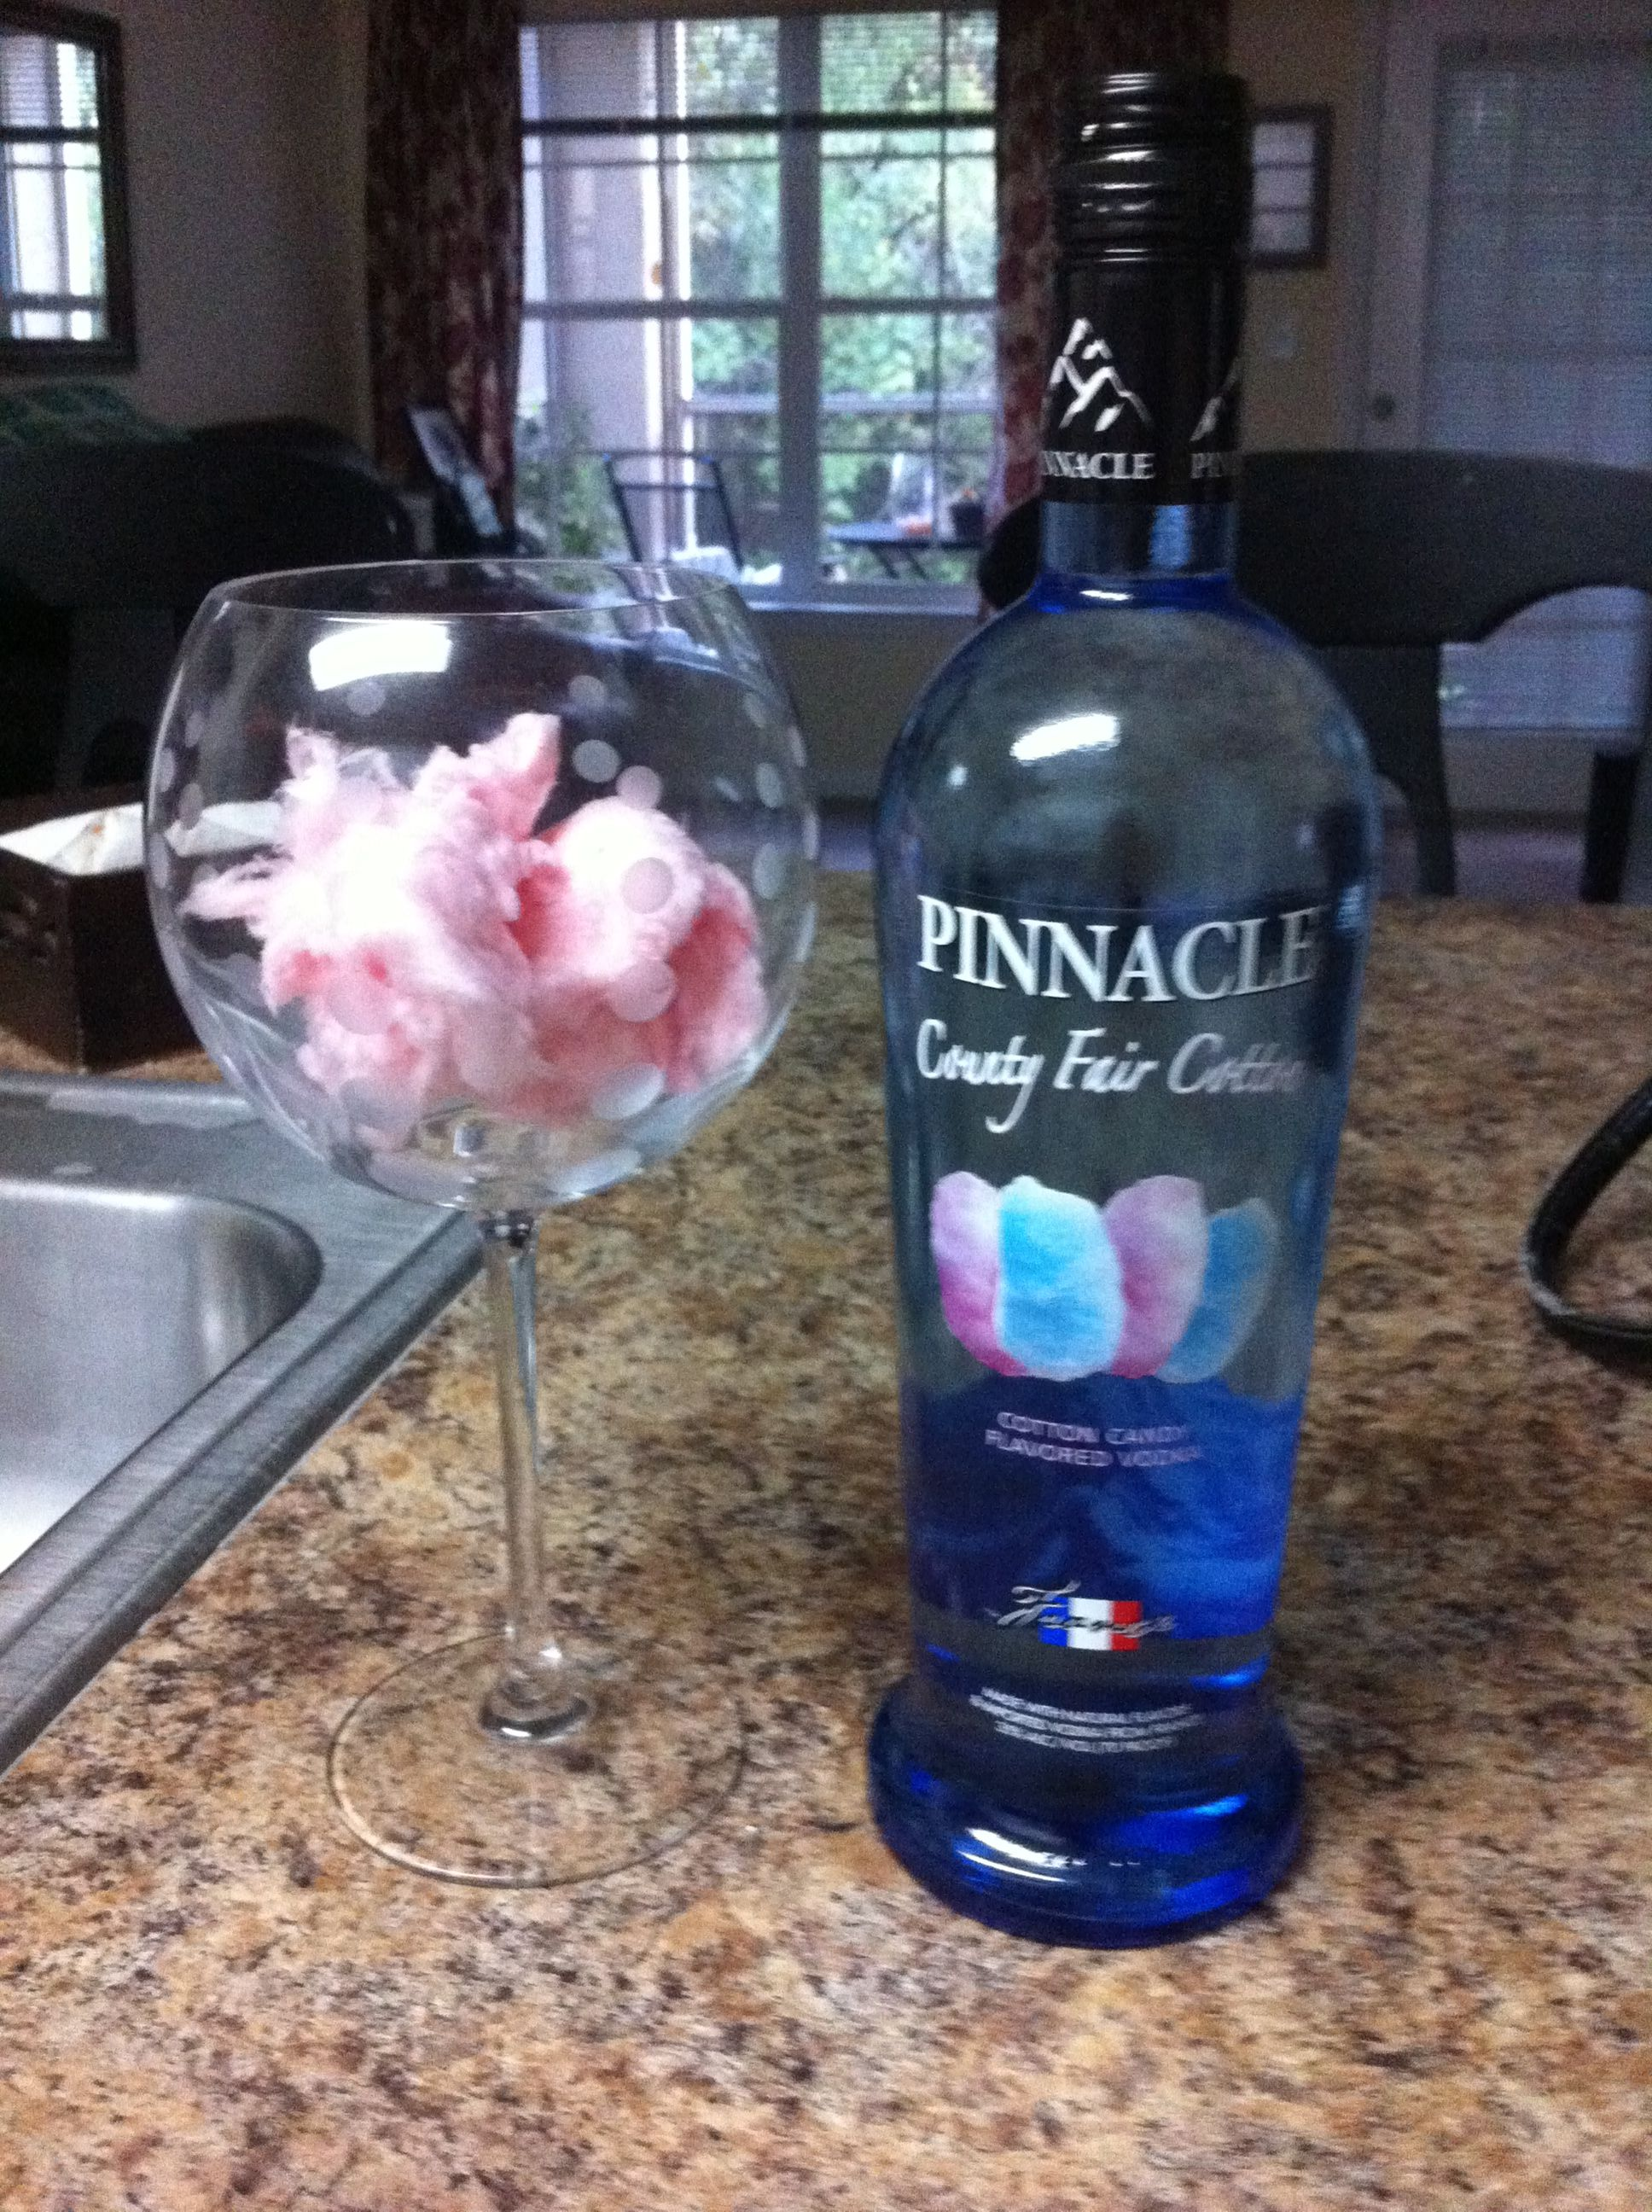 Cotton candy cocktail! Cotton candy, pinnacle vodka cotton candy ...